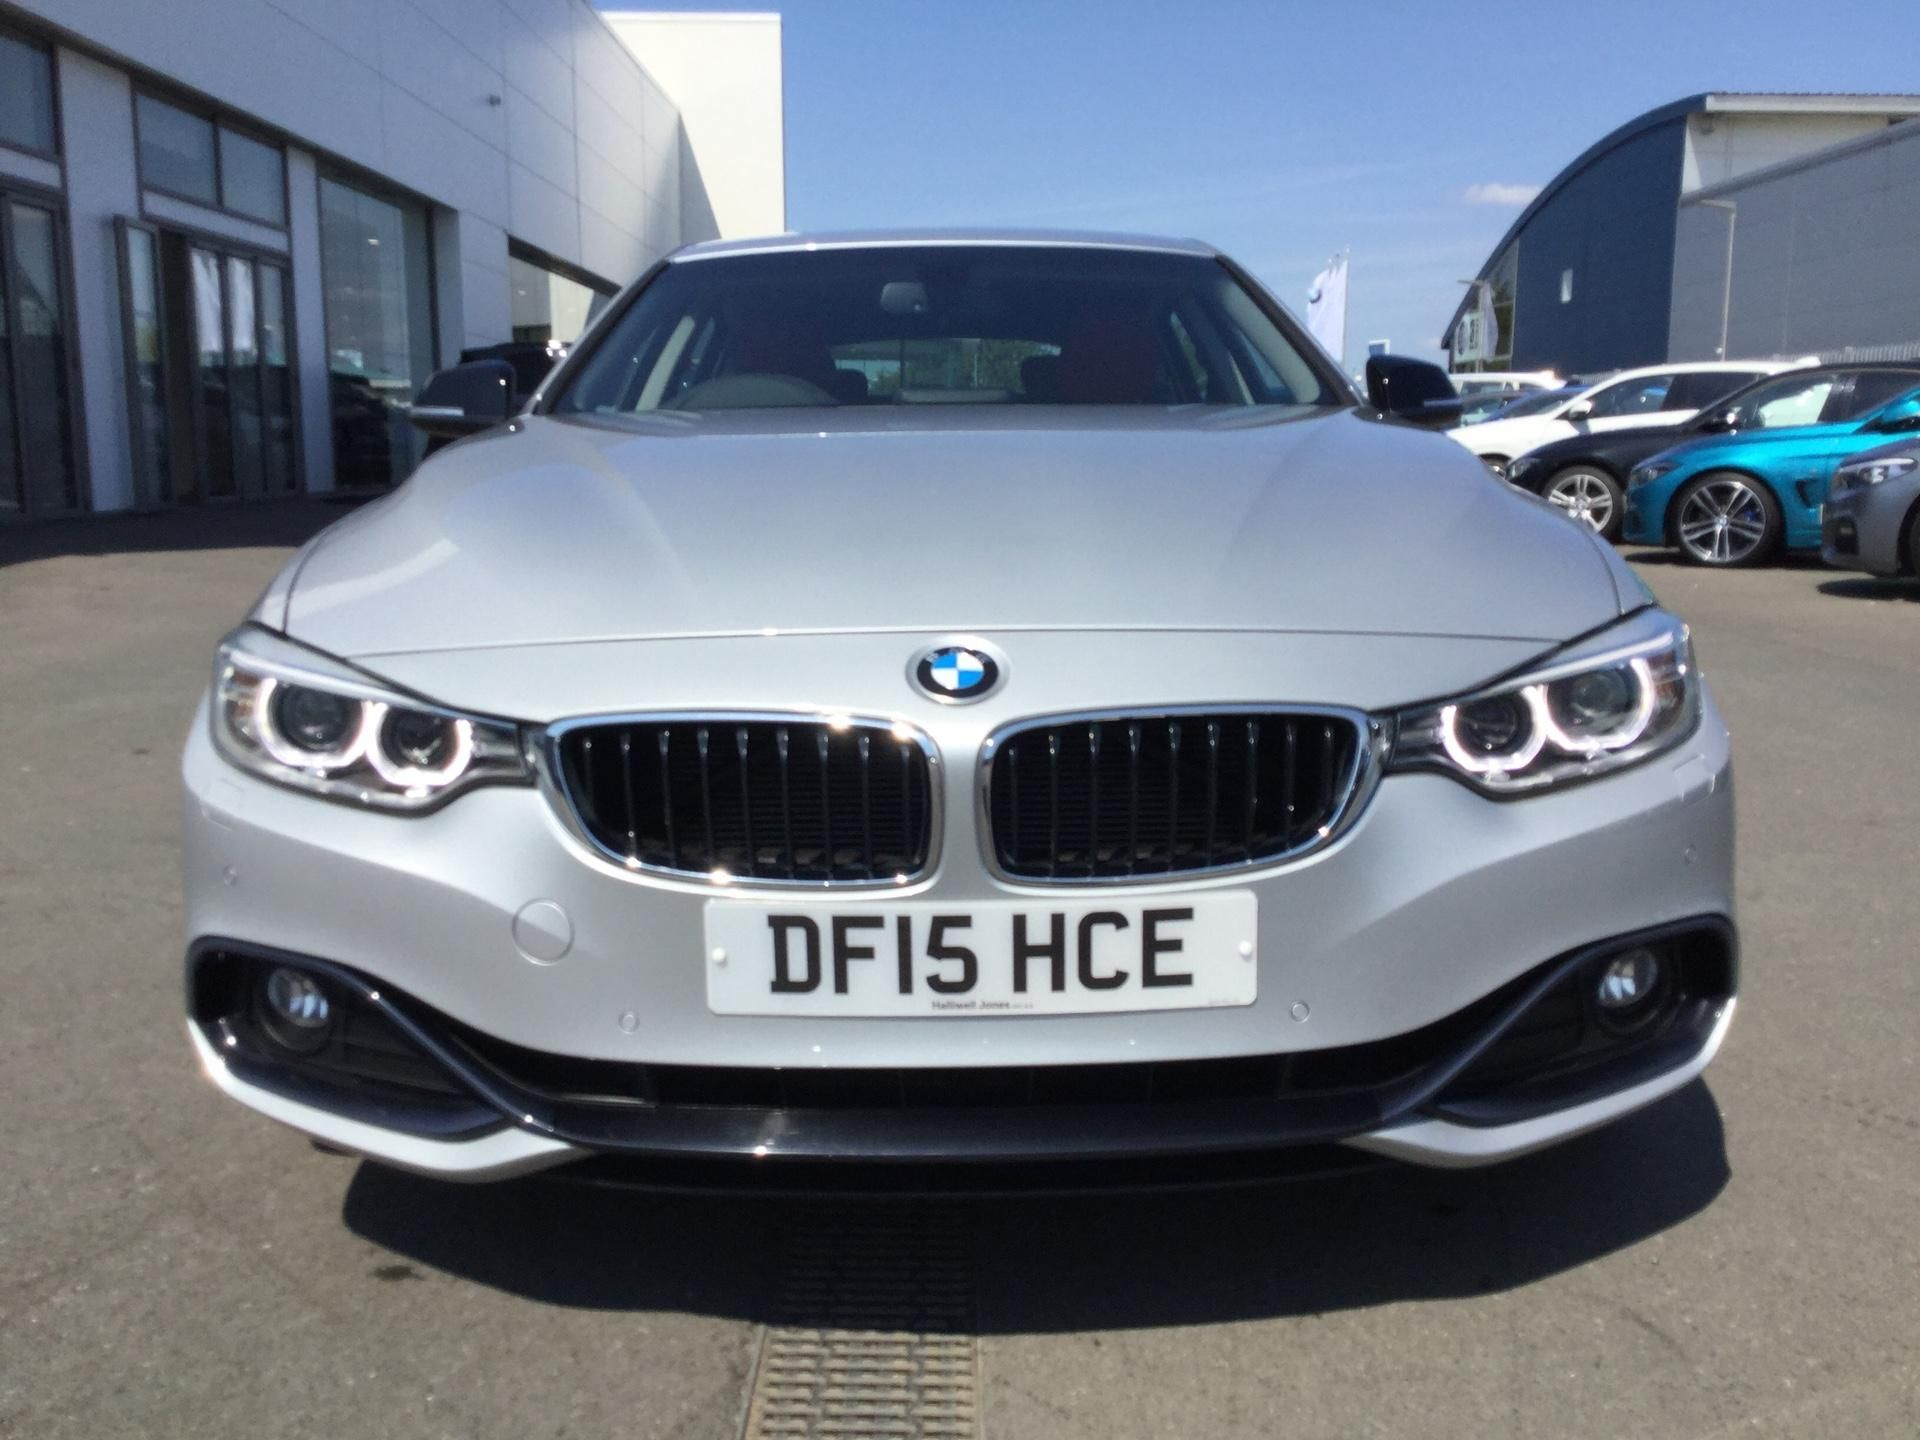 Image 5 - BMW 428i Sport Gran Coupe (DF15HCE)